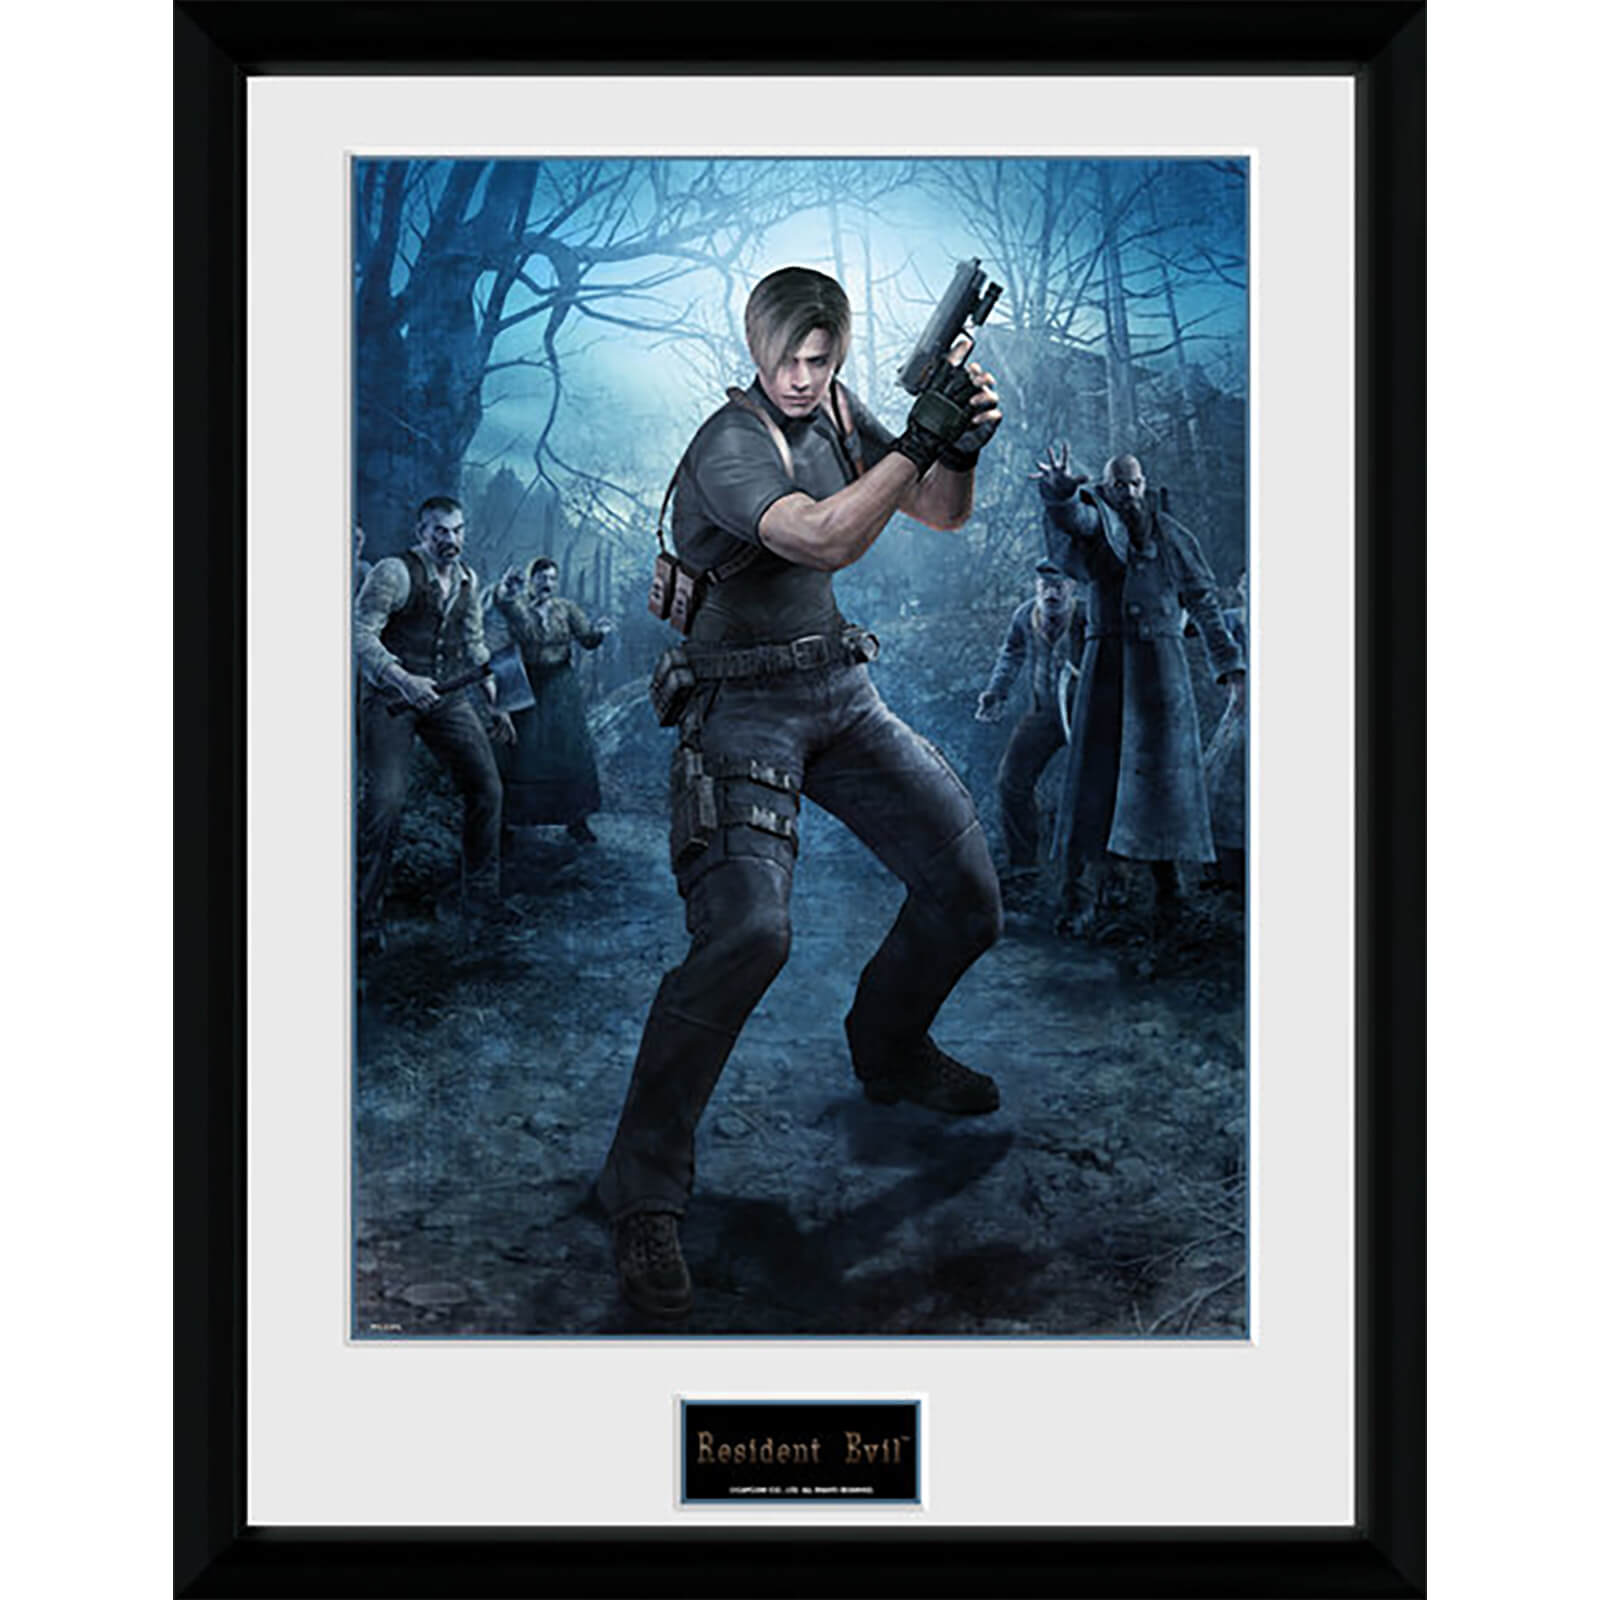 Resident Evil Leon Gun - 16 x 12 Inches Framed Photograph